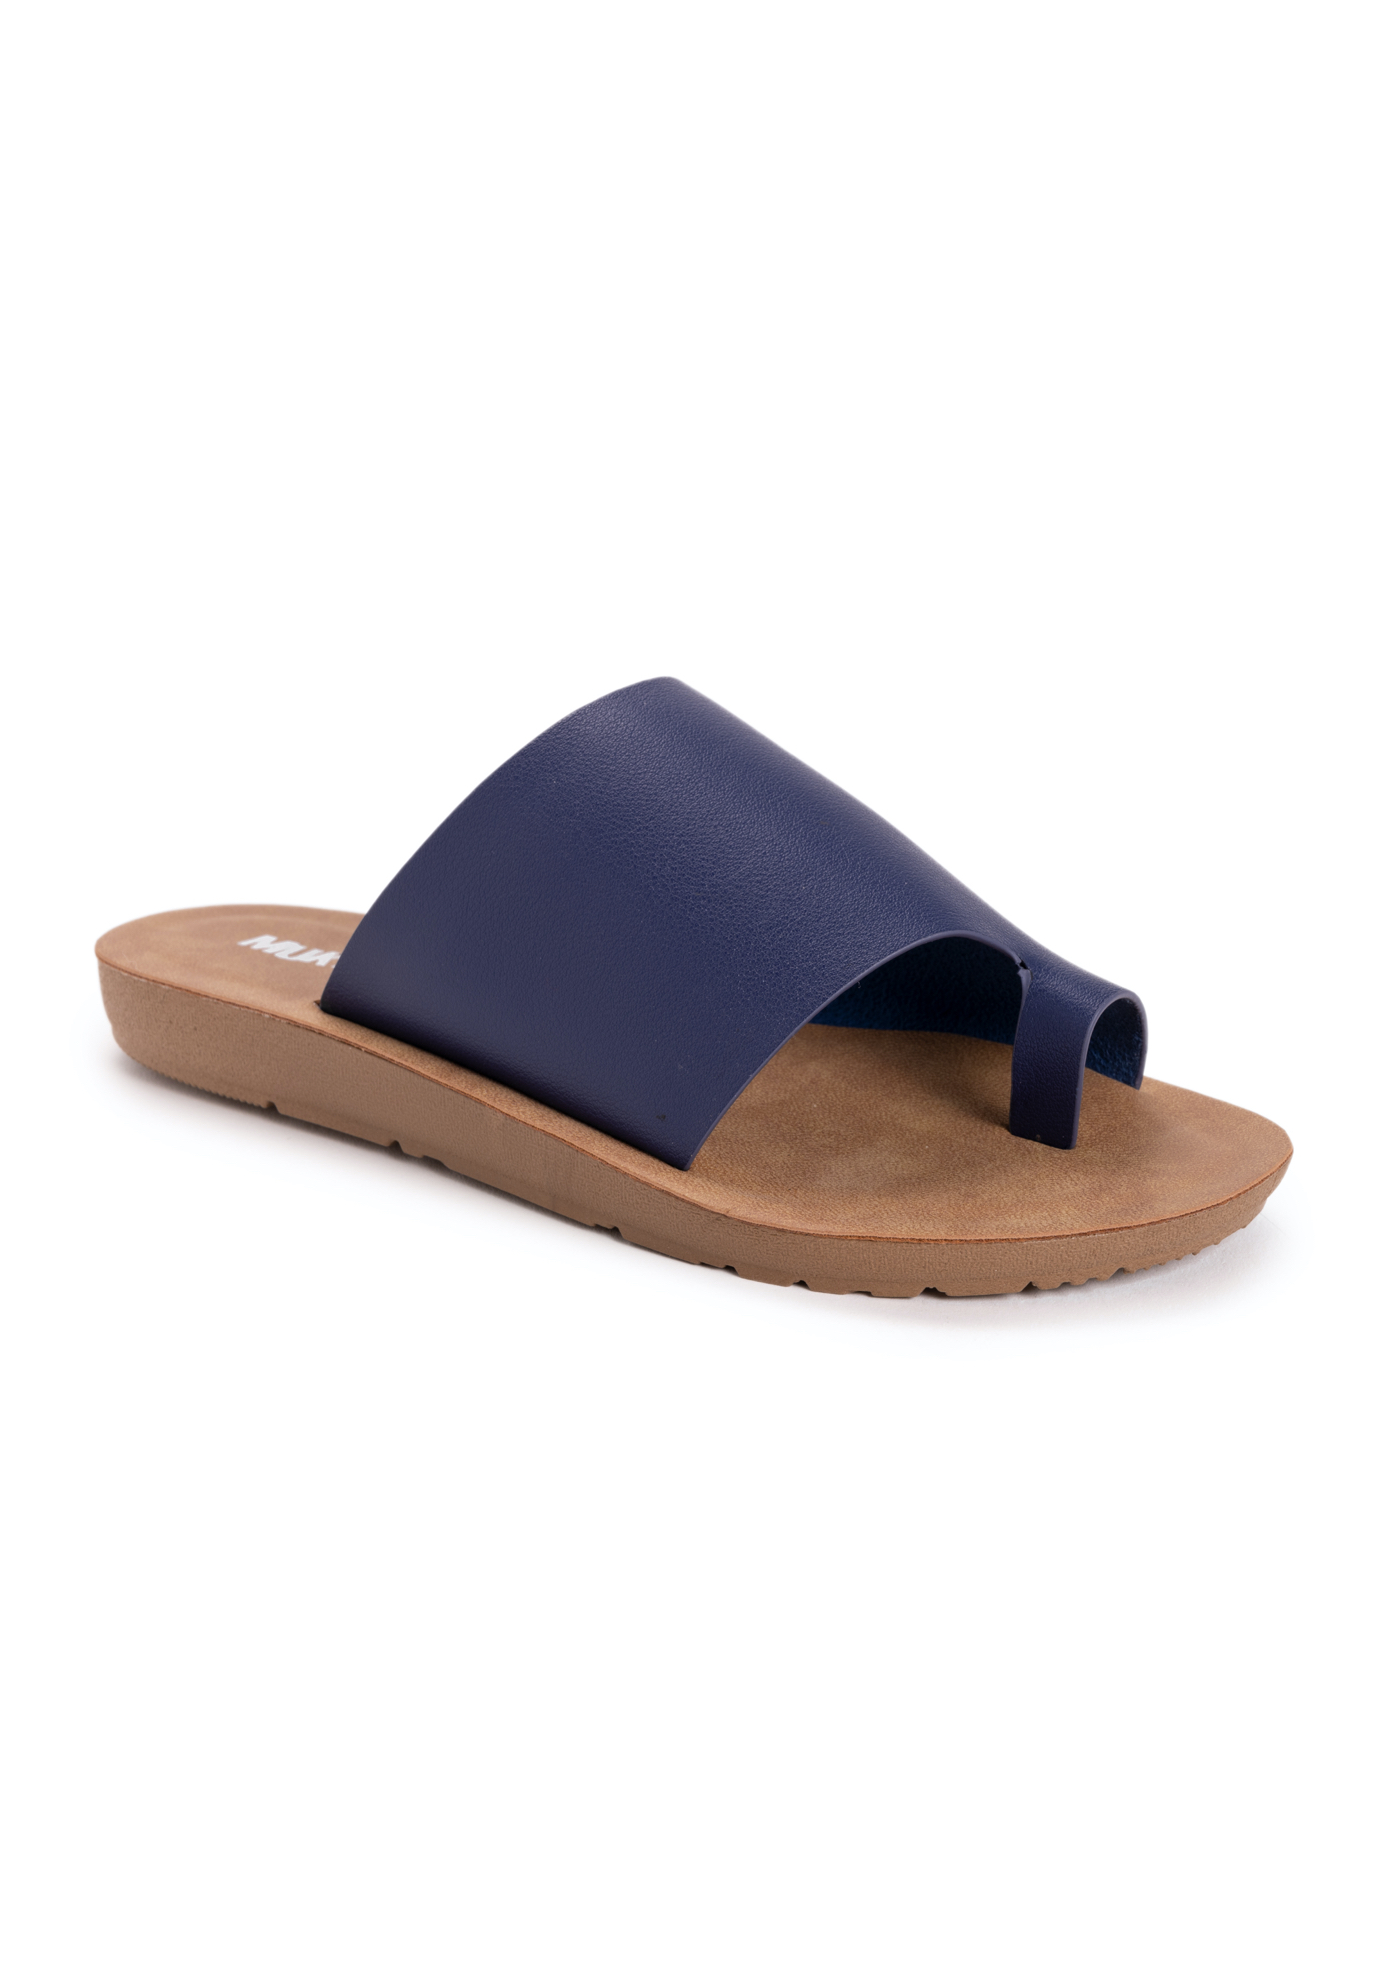 About Face Sandals,